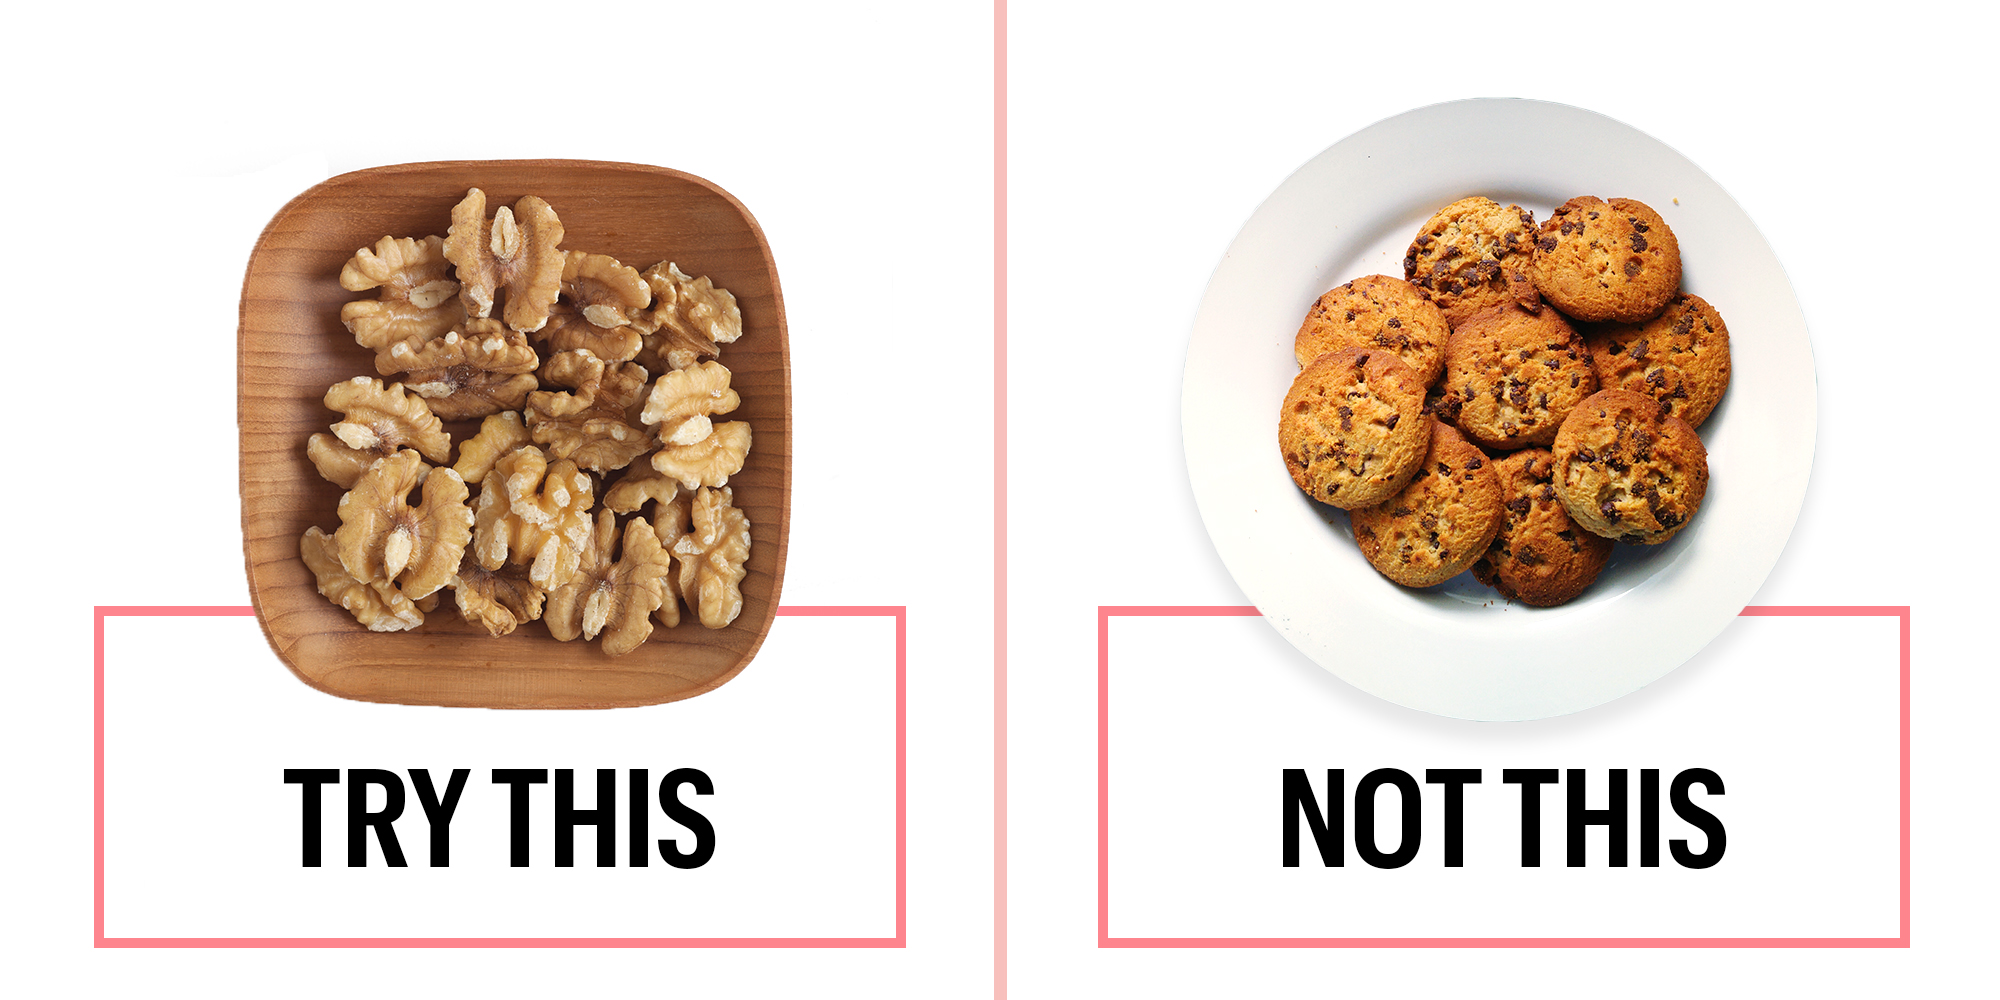 Healthy Snacks For Work 12 Easy Snack Ideas For Your Desk